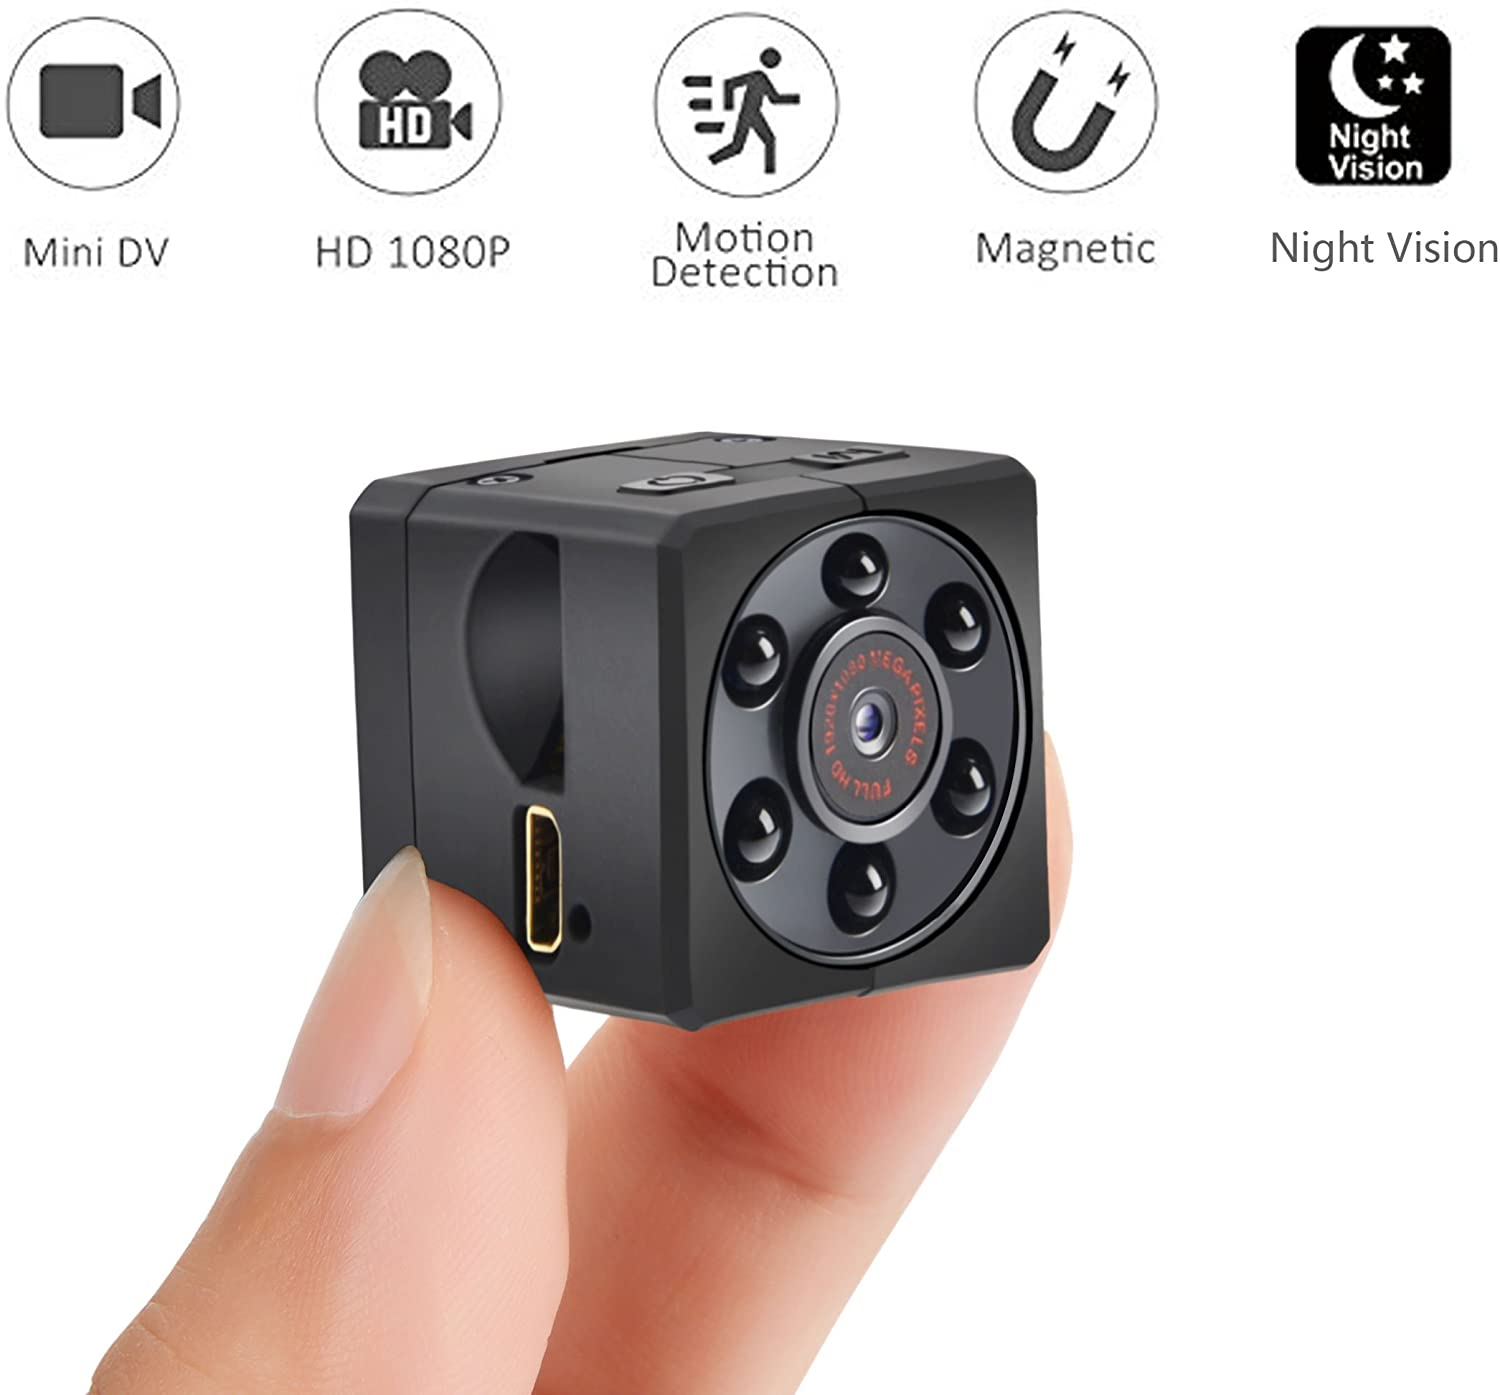 Spy Hidden Camera 1080P Portable Small HD Nanny Cam with Night Vision and Motion Detective Perfect Indoor Covert Mini Security Camera for Home and Office